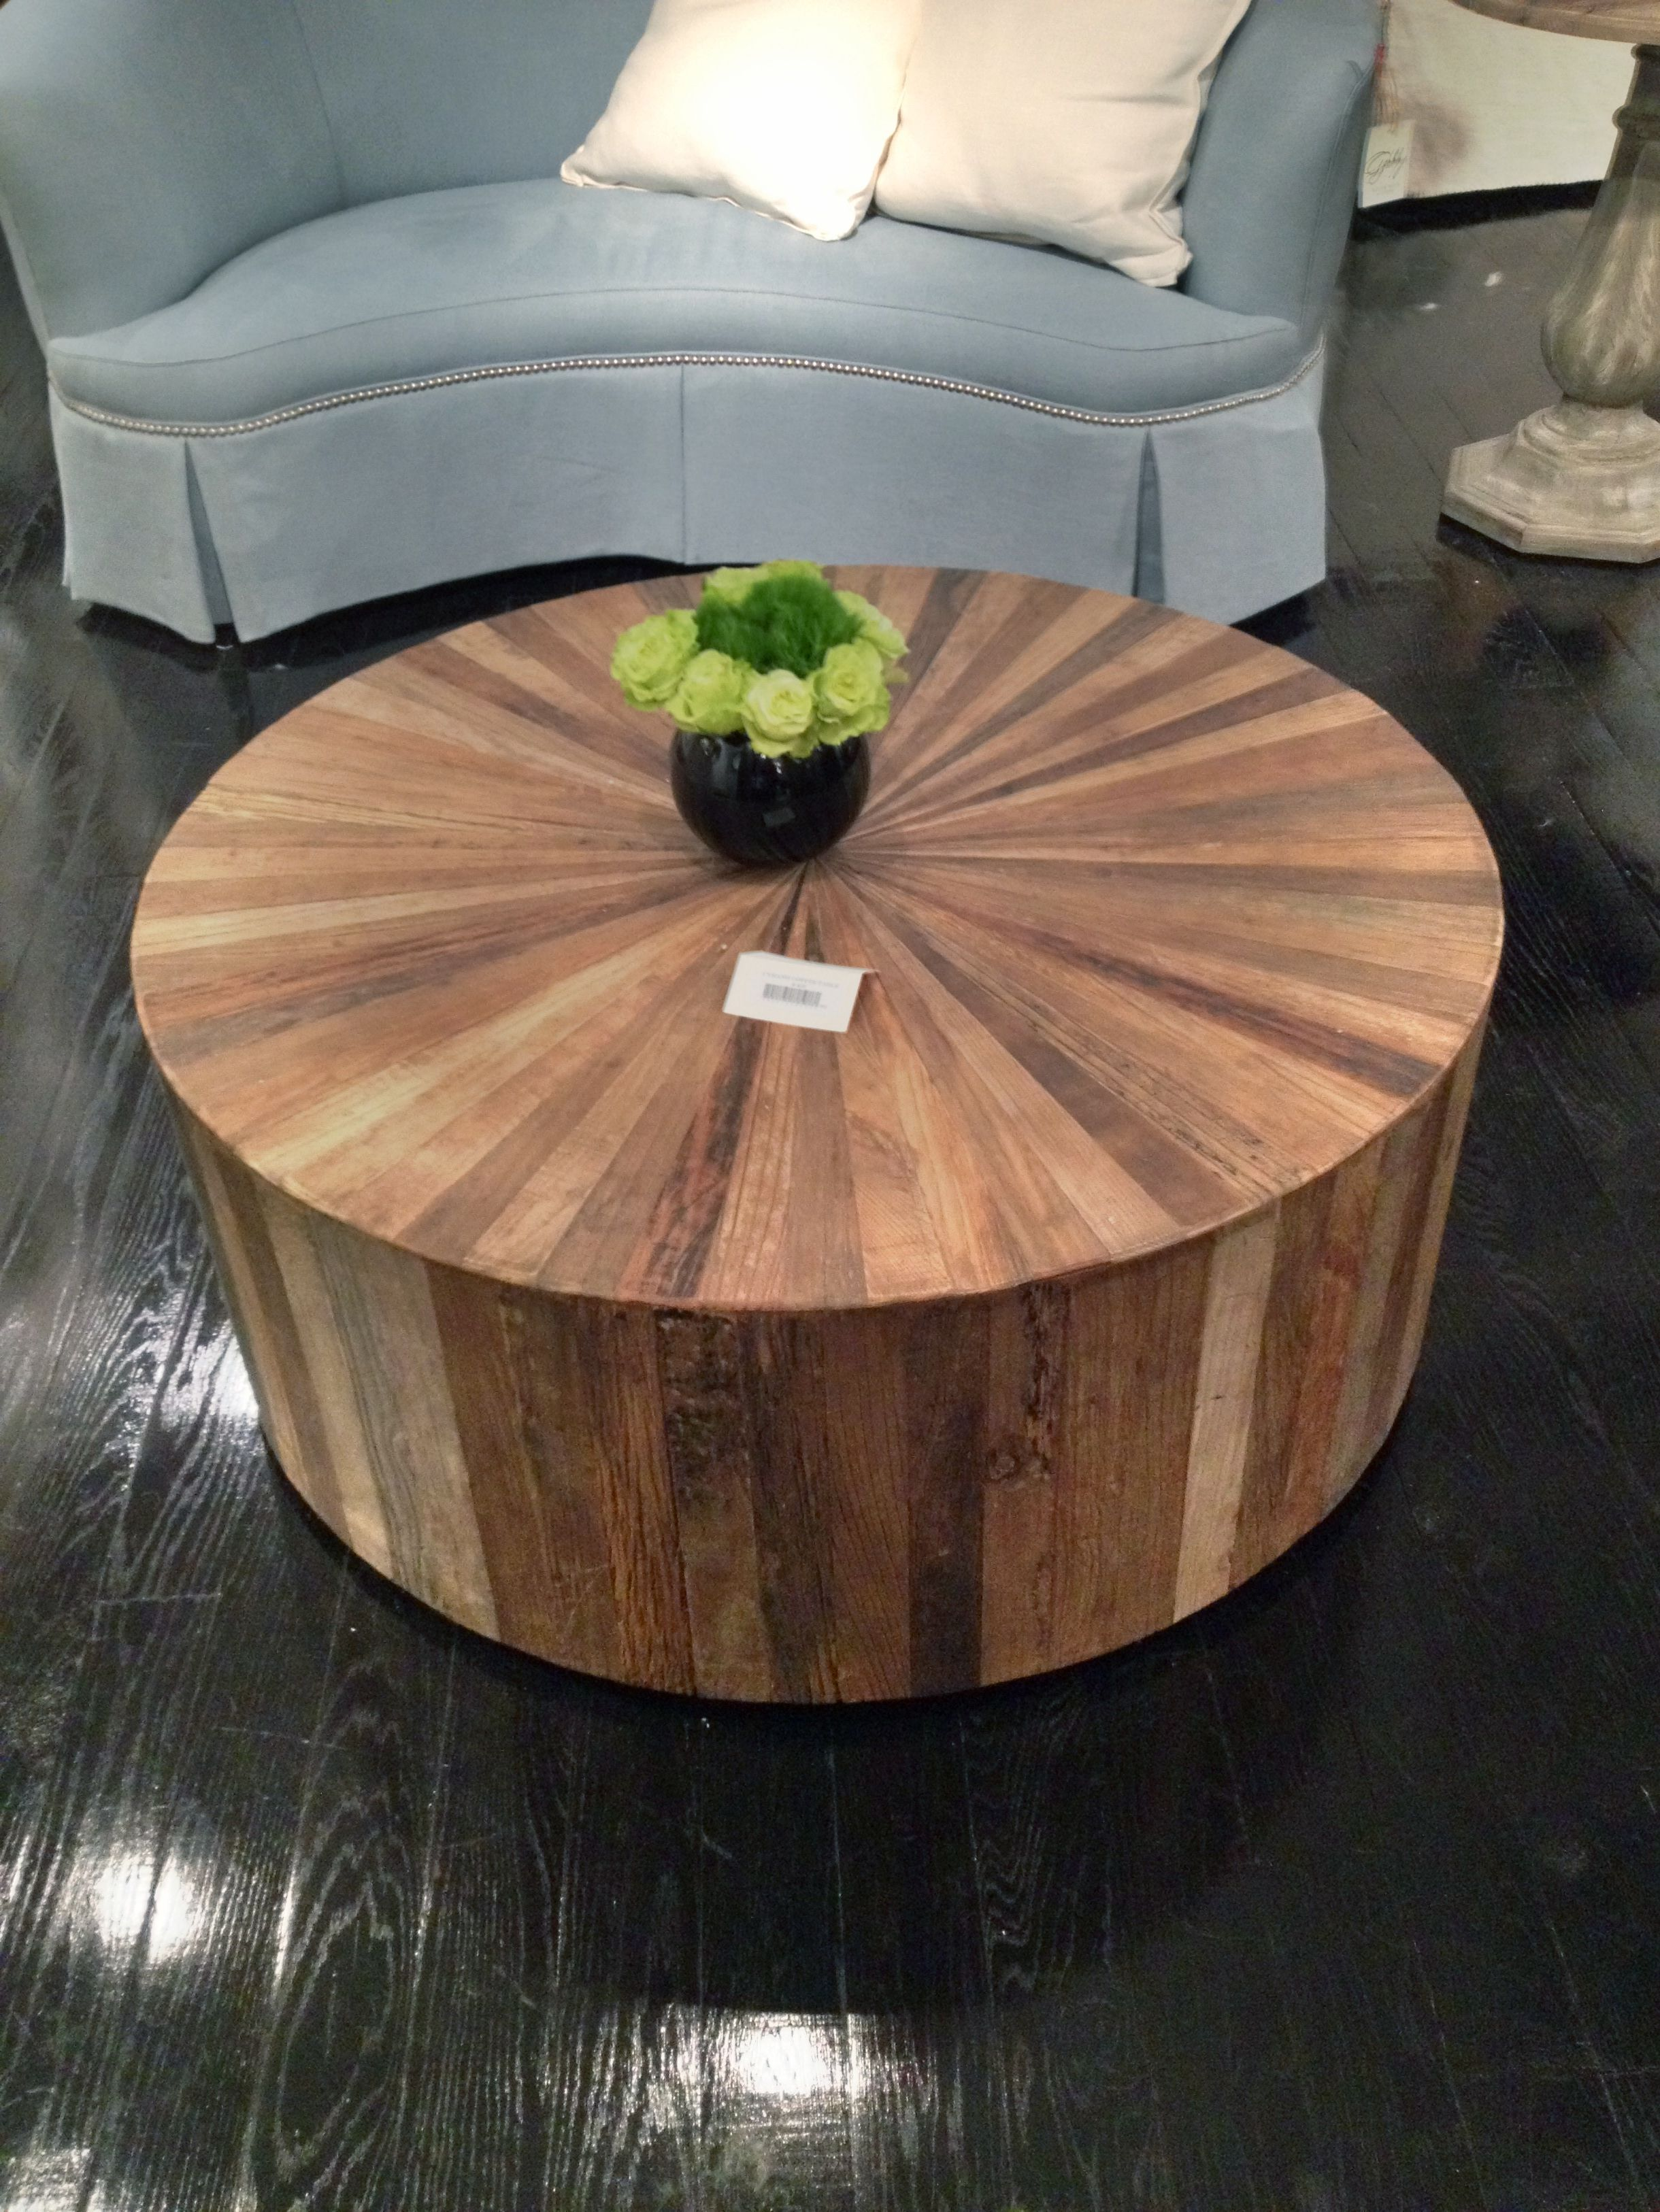 Round Wood Coffee Table Can You Make It Into A Storage Piece By Taking Off The Top A Project For Mat Round Wood Coffee Table Coffee Table Coffee Table Wood [ 3252 x 2440 Pixel ]